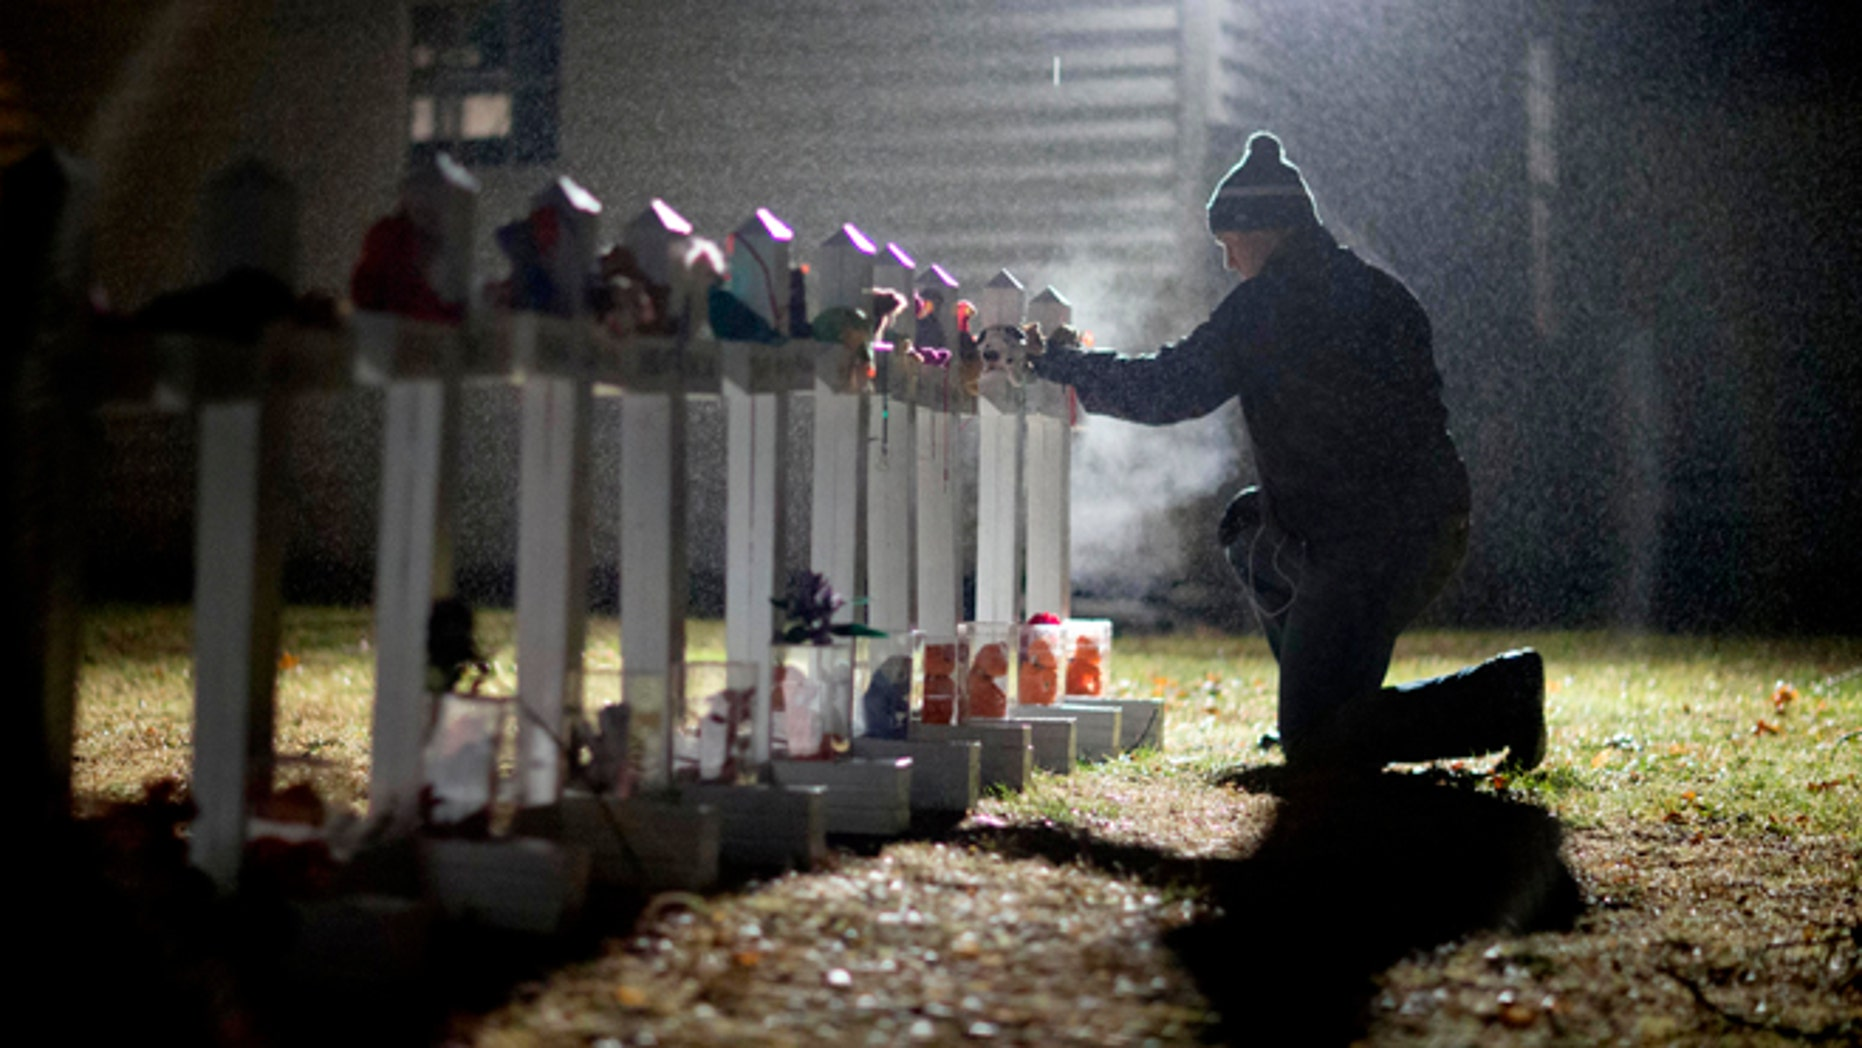 A display of wooden crosses and a Star of David for the Sandy Hook victims, in 2012.